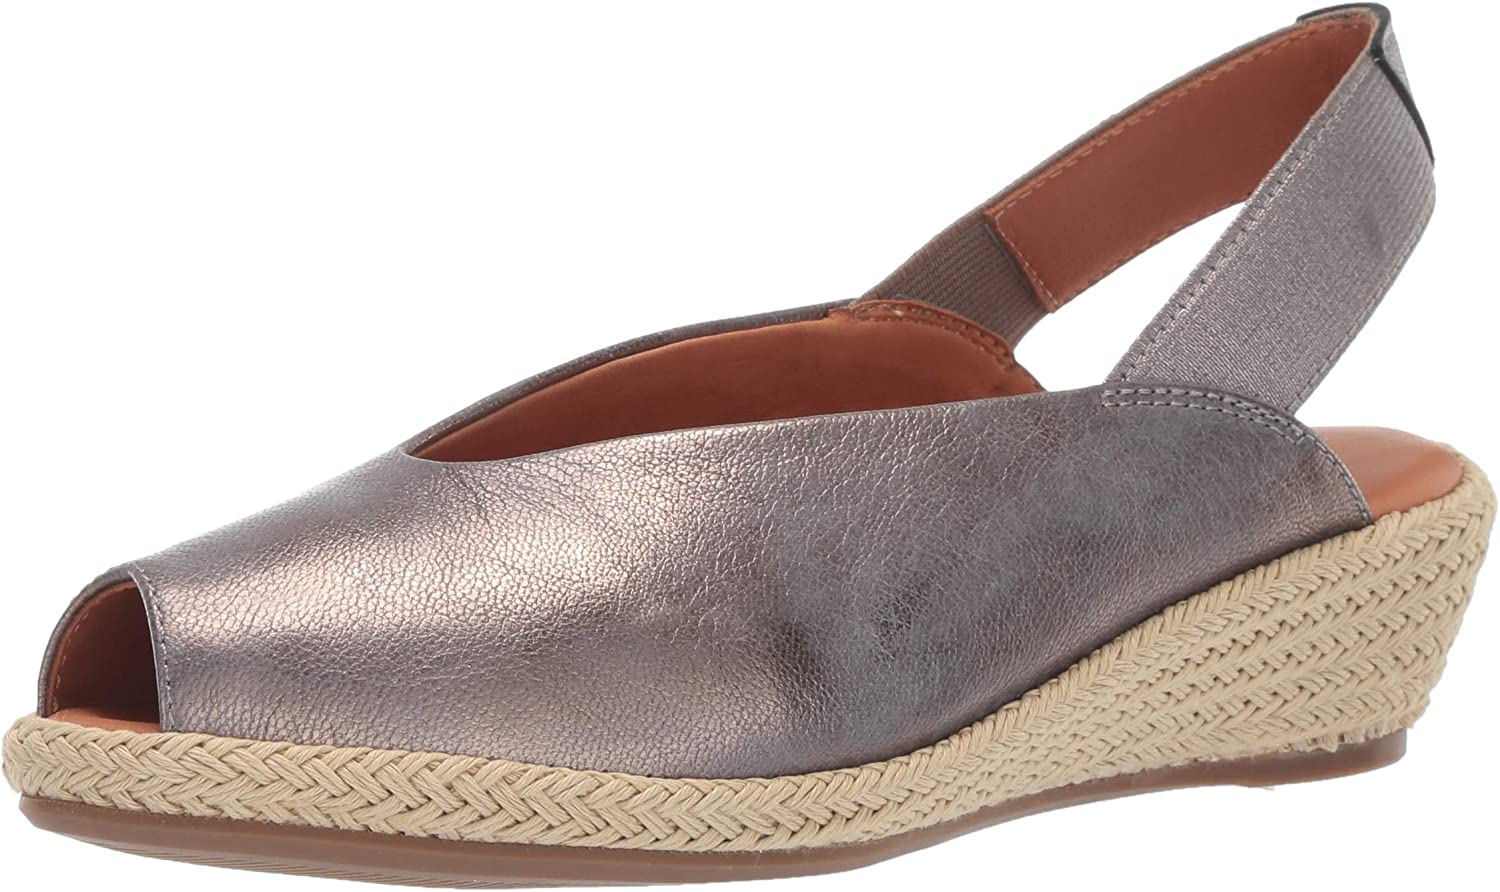 Gentle Souls by Kenneth Cole San Sales Slingback Omaha Mall Luci Espadrille Wedge